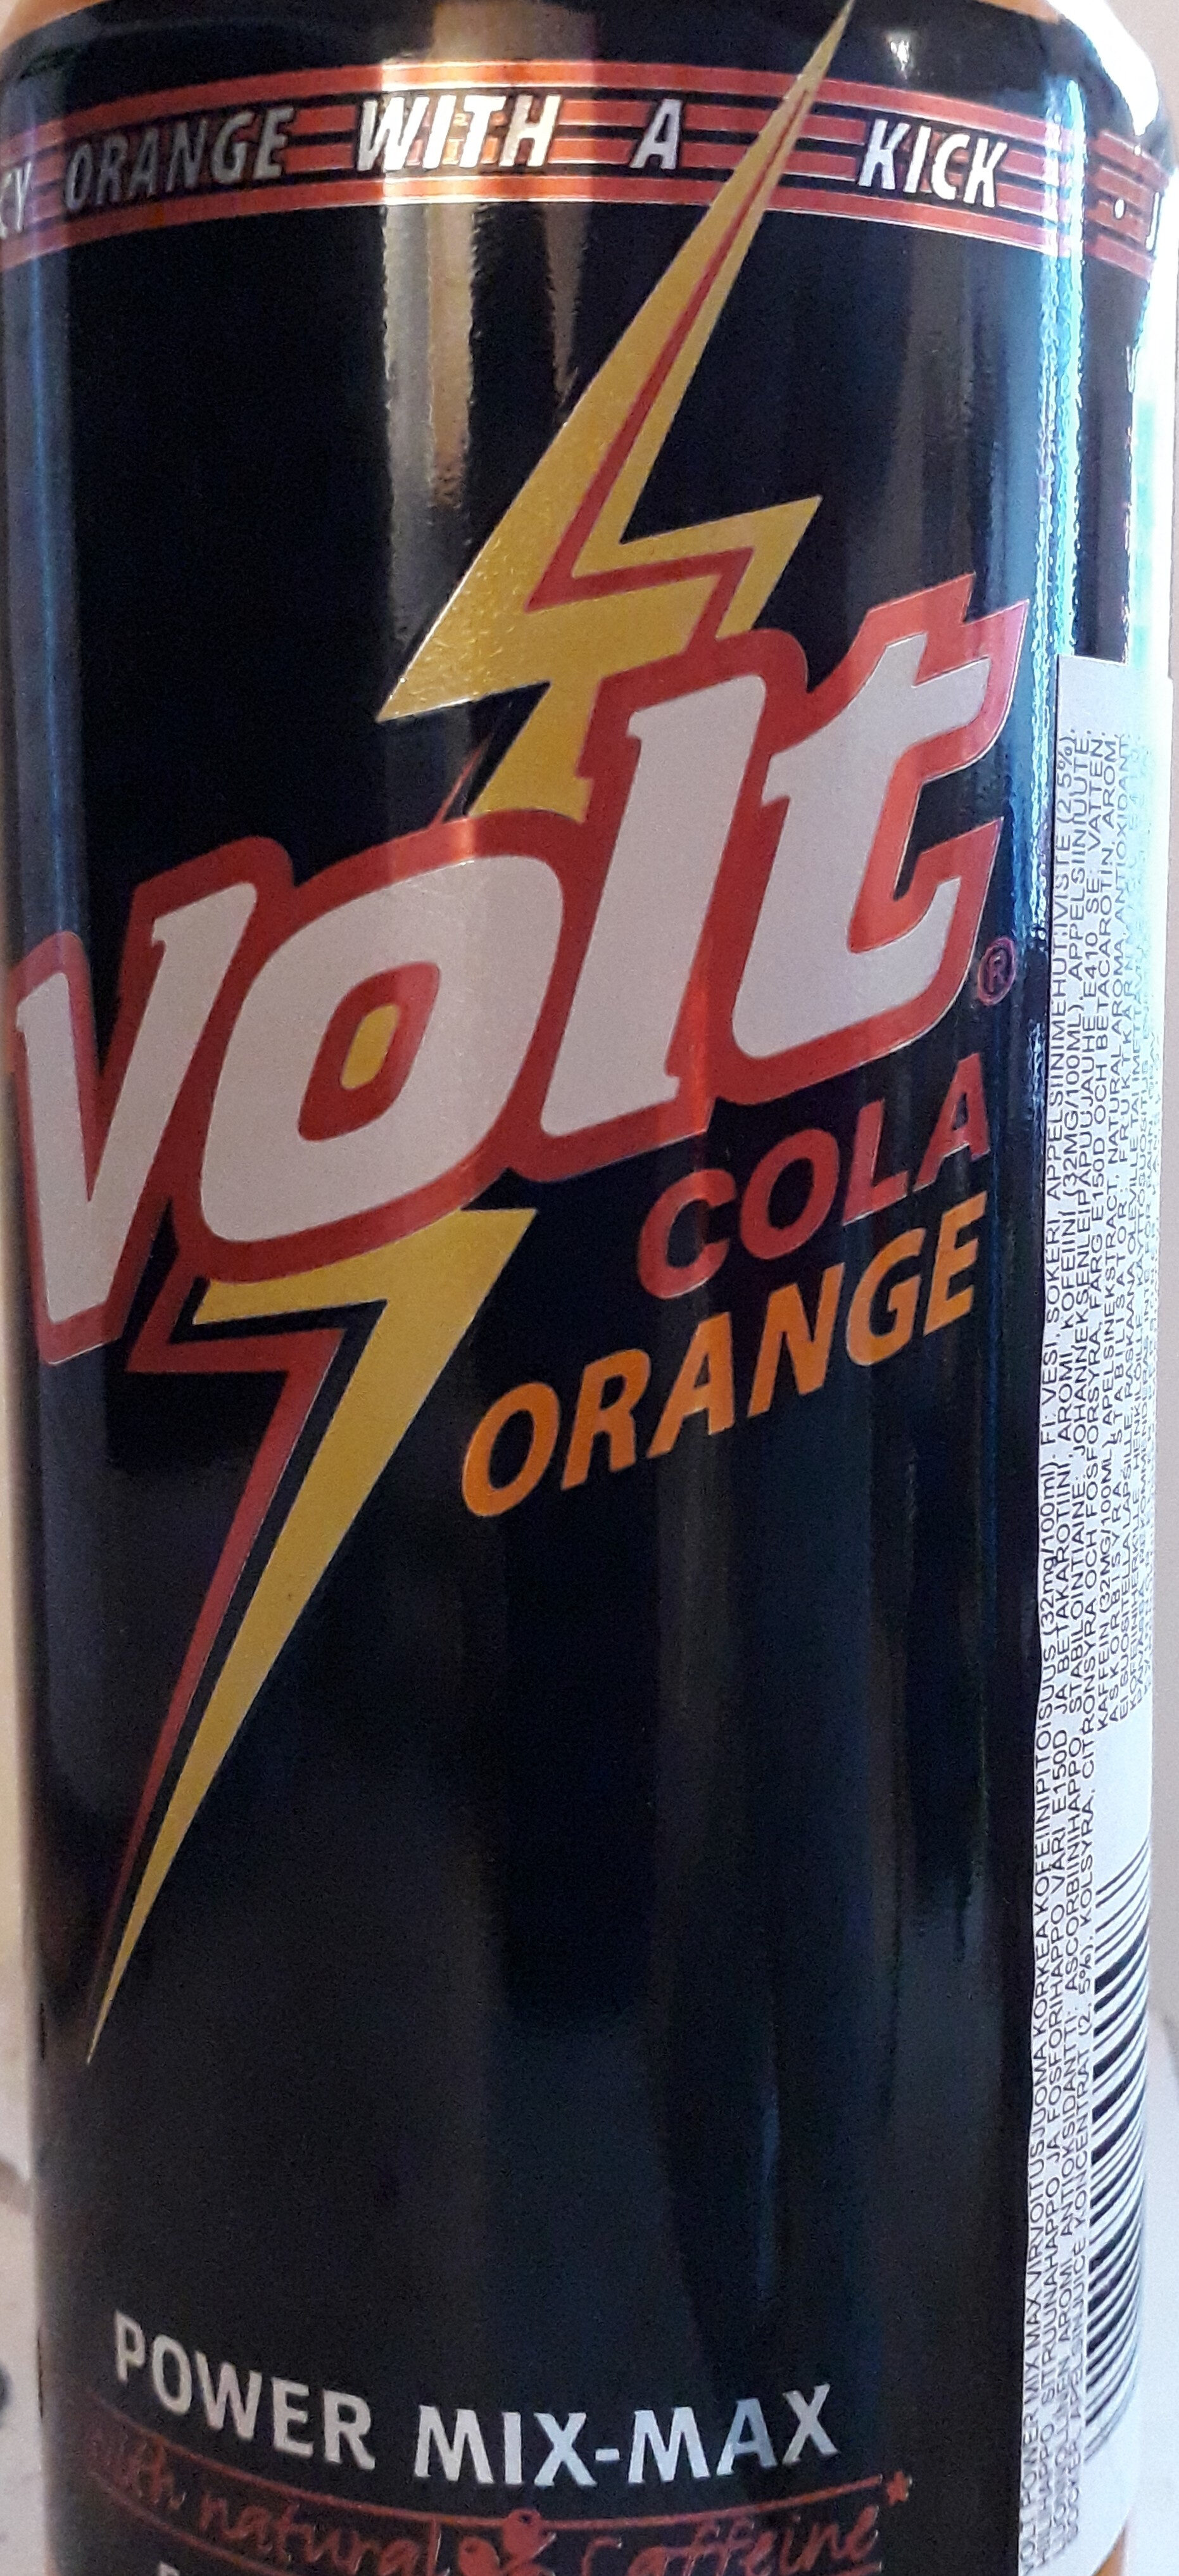 Power min max cola orange - Produit - fi